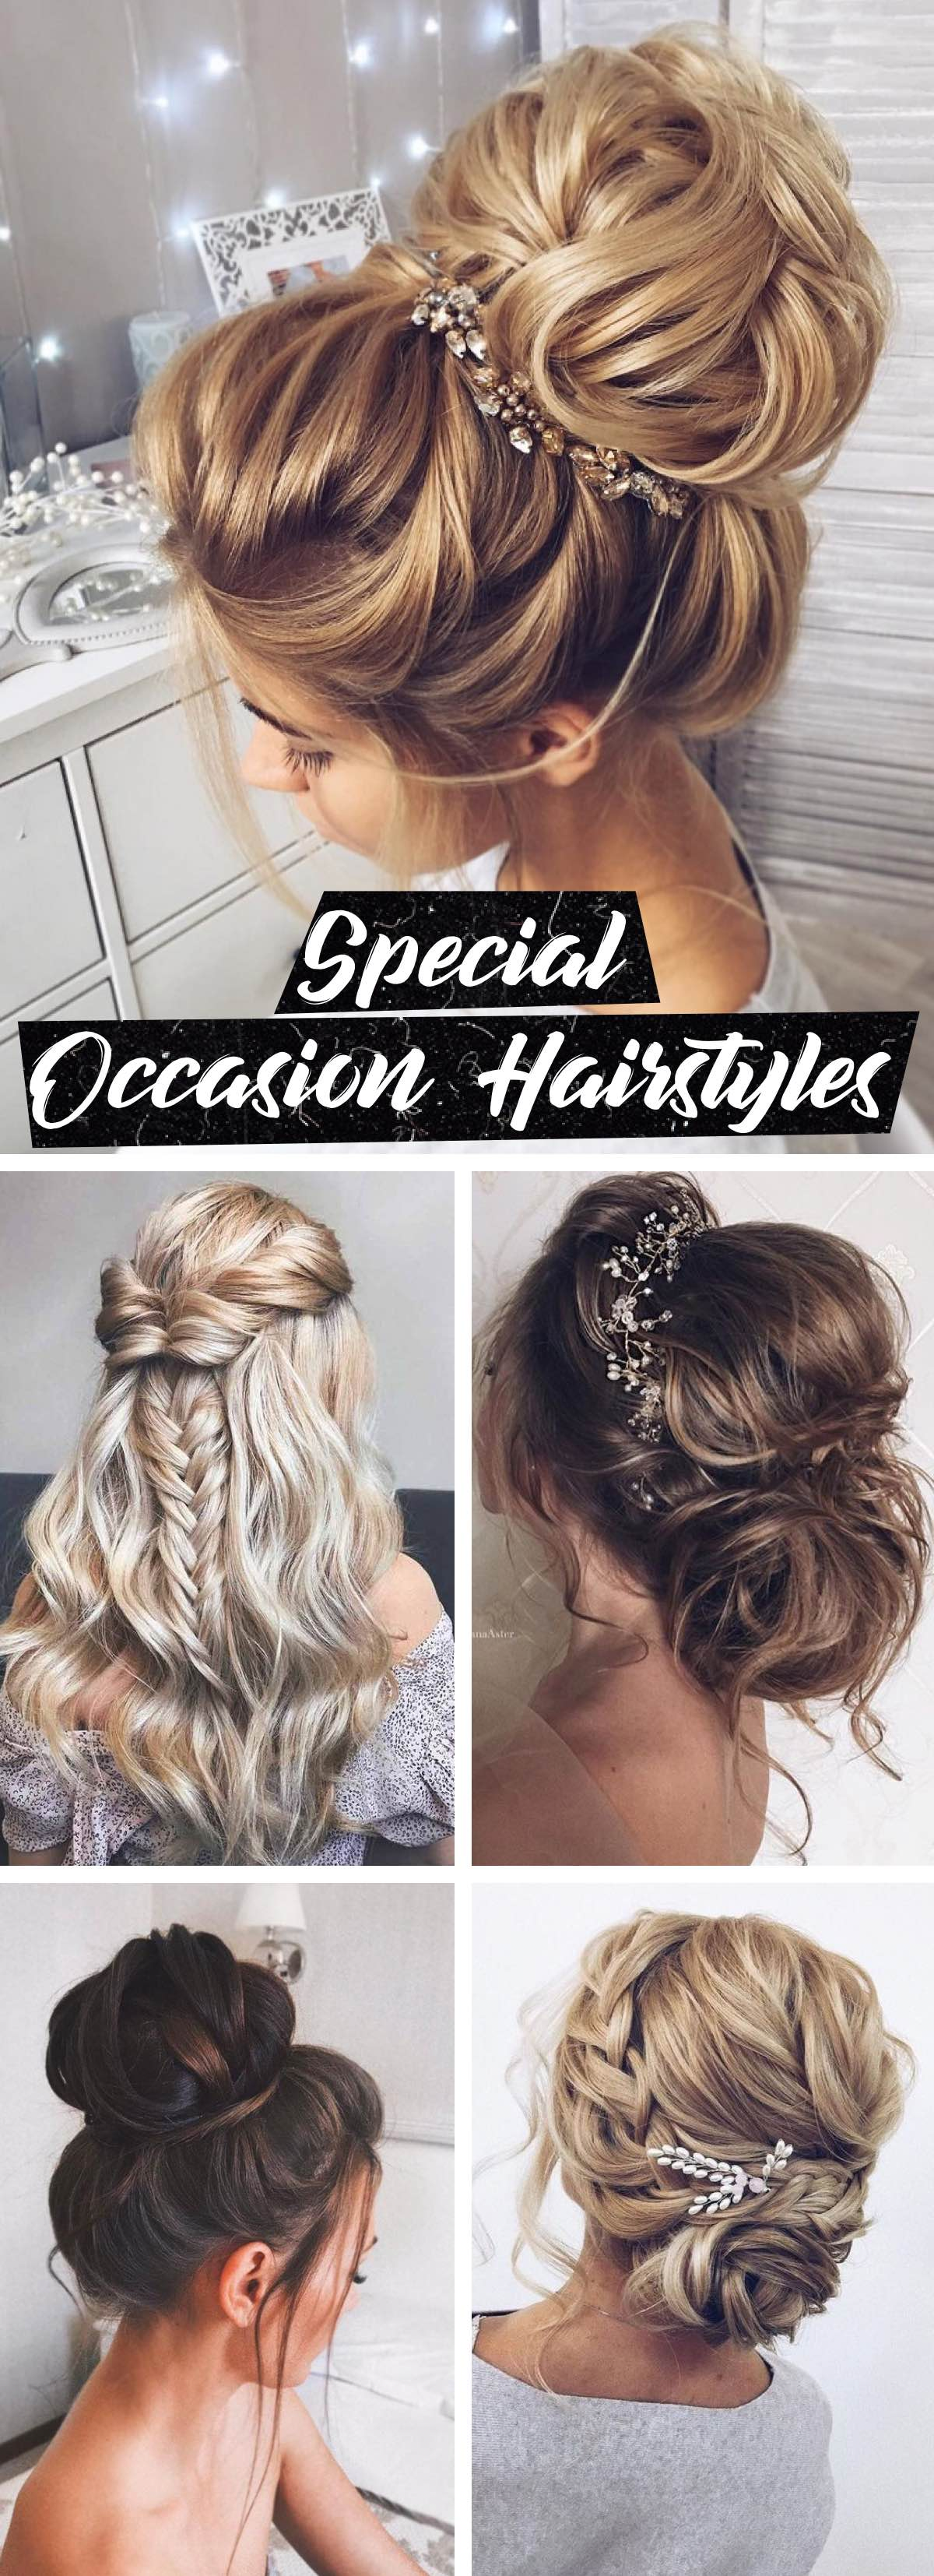 Special Occasion Hairstyles That Will Make You Enchant the Big Day